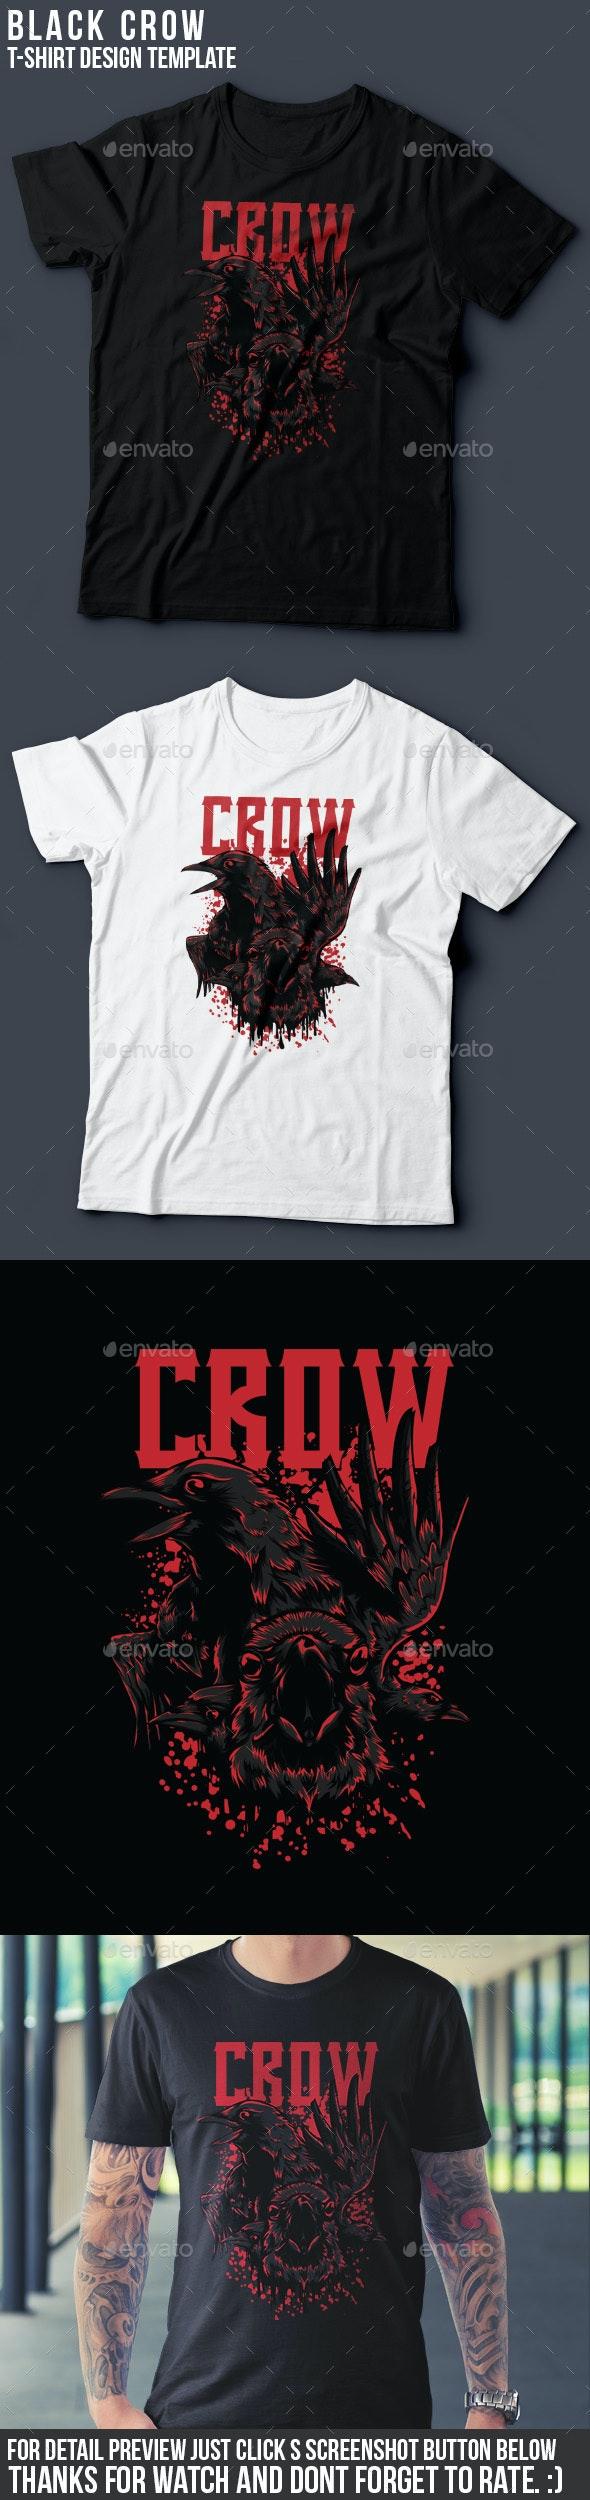 Black Crow T-Shirt Design